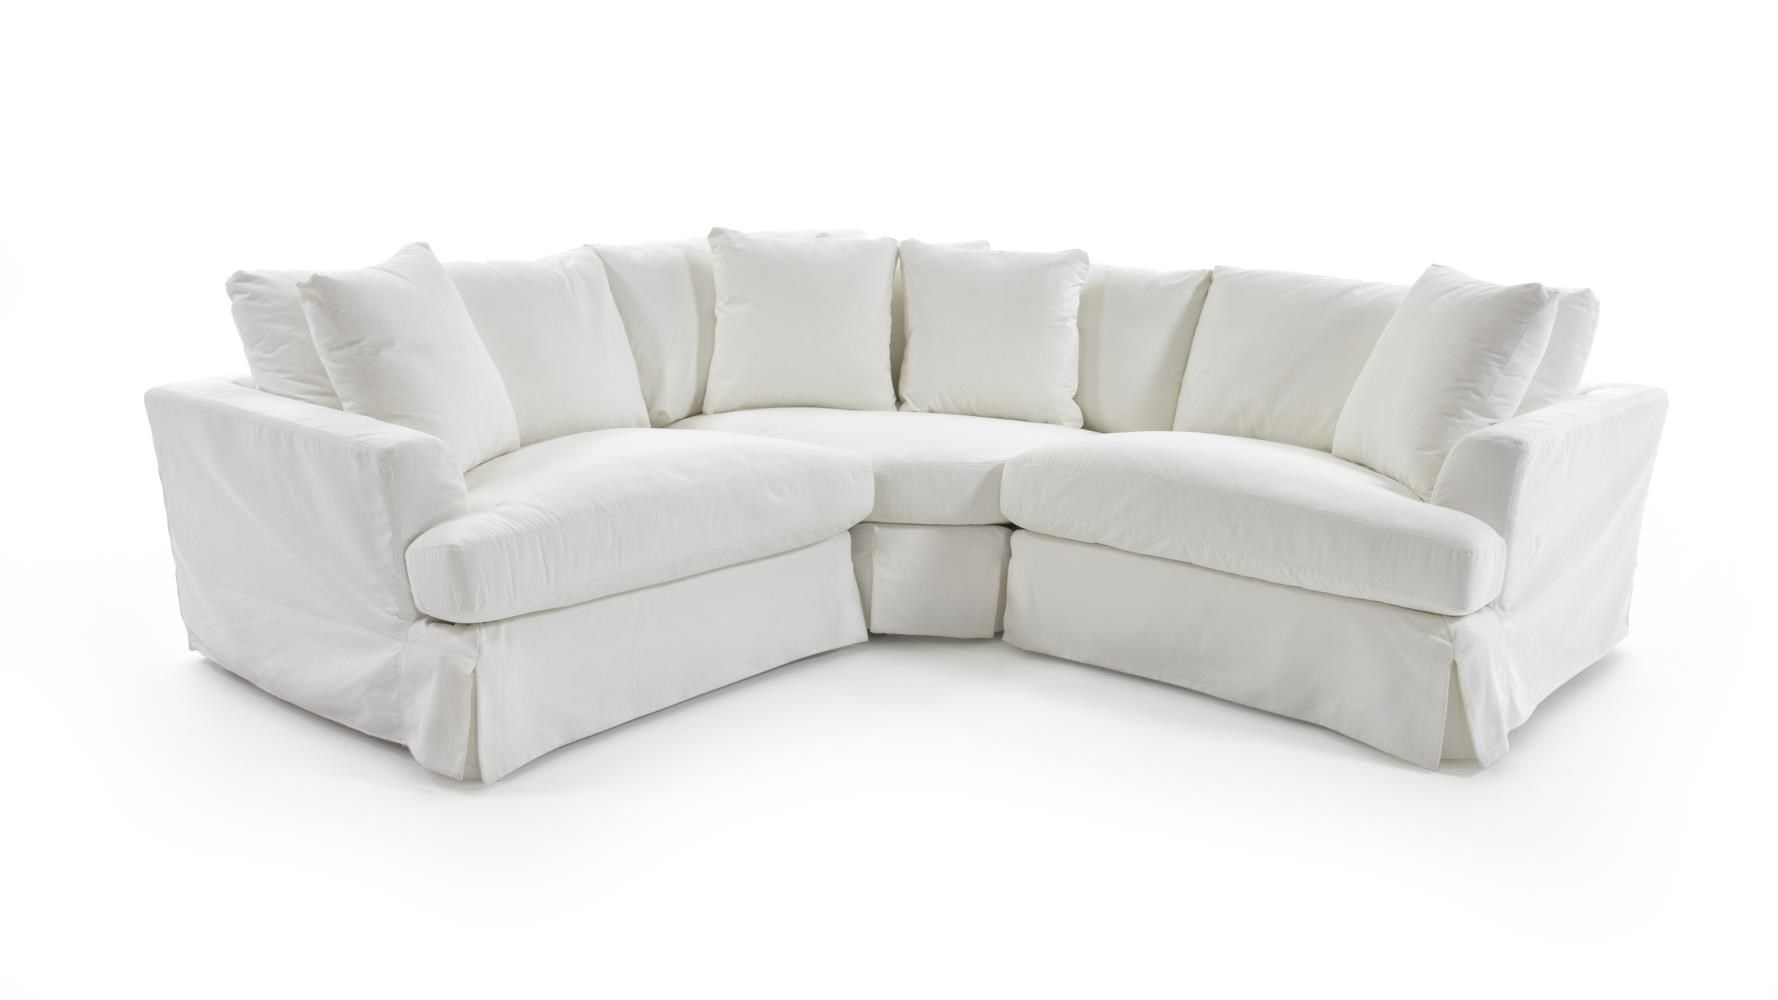 1300 Three Piece Corner Sectional Sofa With Slipcoversynergy With Newmarket Ontario Sectional Sofas (Gallery 9 of 10)